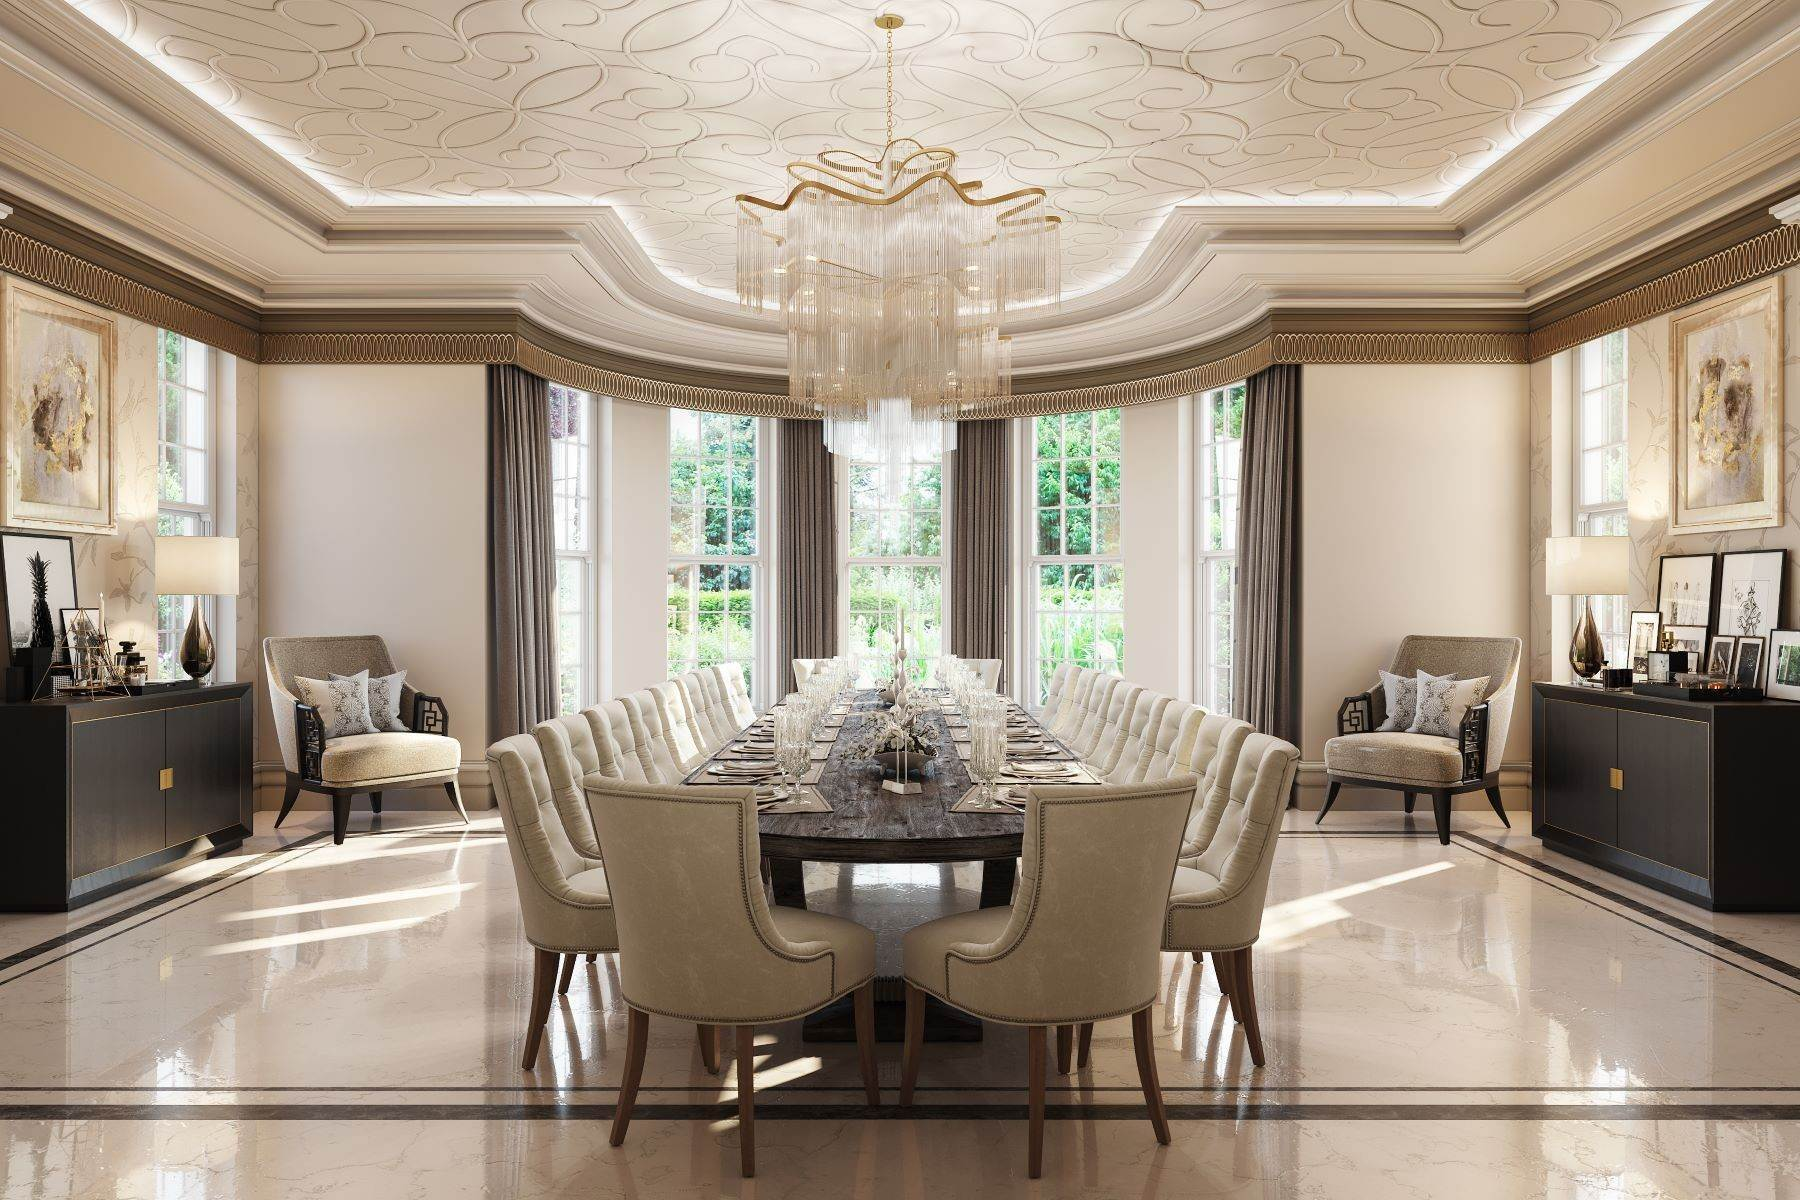 9. Single Family Homes for Sale at Hampton Hall Queens Drive London, England KT22 0PB United Kingdom